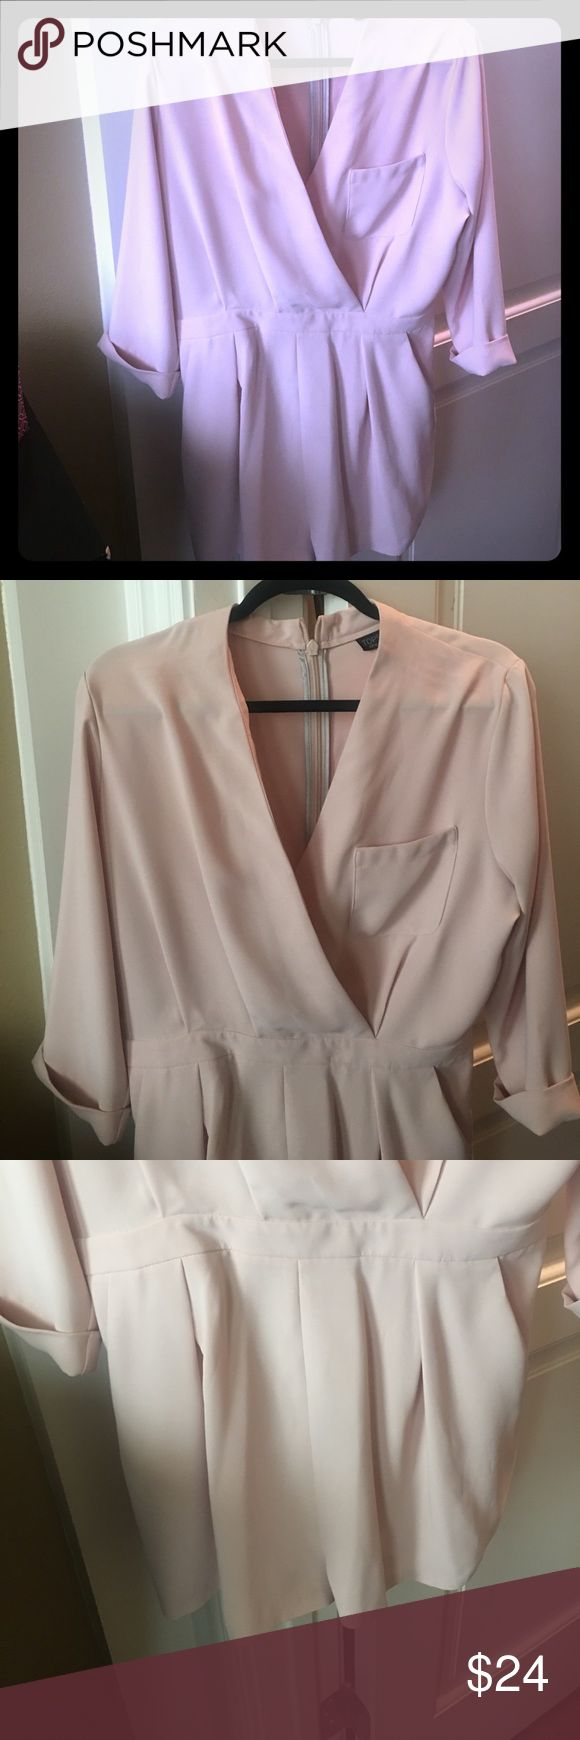 Top shop blush pink ladies romper TopShop ladies blush pink romper. Very feminine design. Bought at the Topshop store in Singapore. Only worn once. Item is in like new condition, no damage Topshop Pants Jumpsuits & Rompers